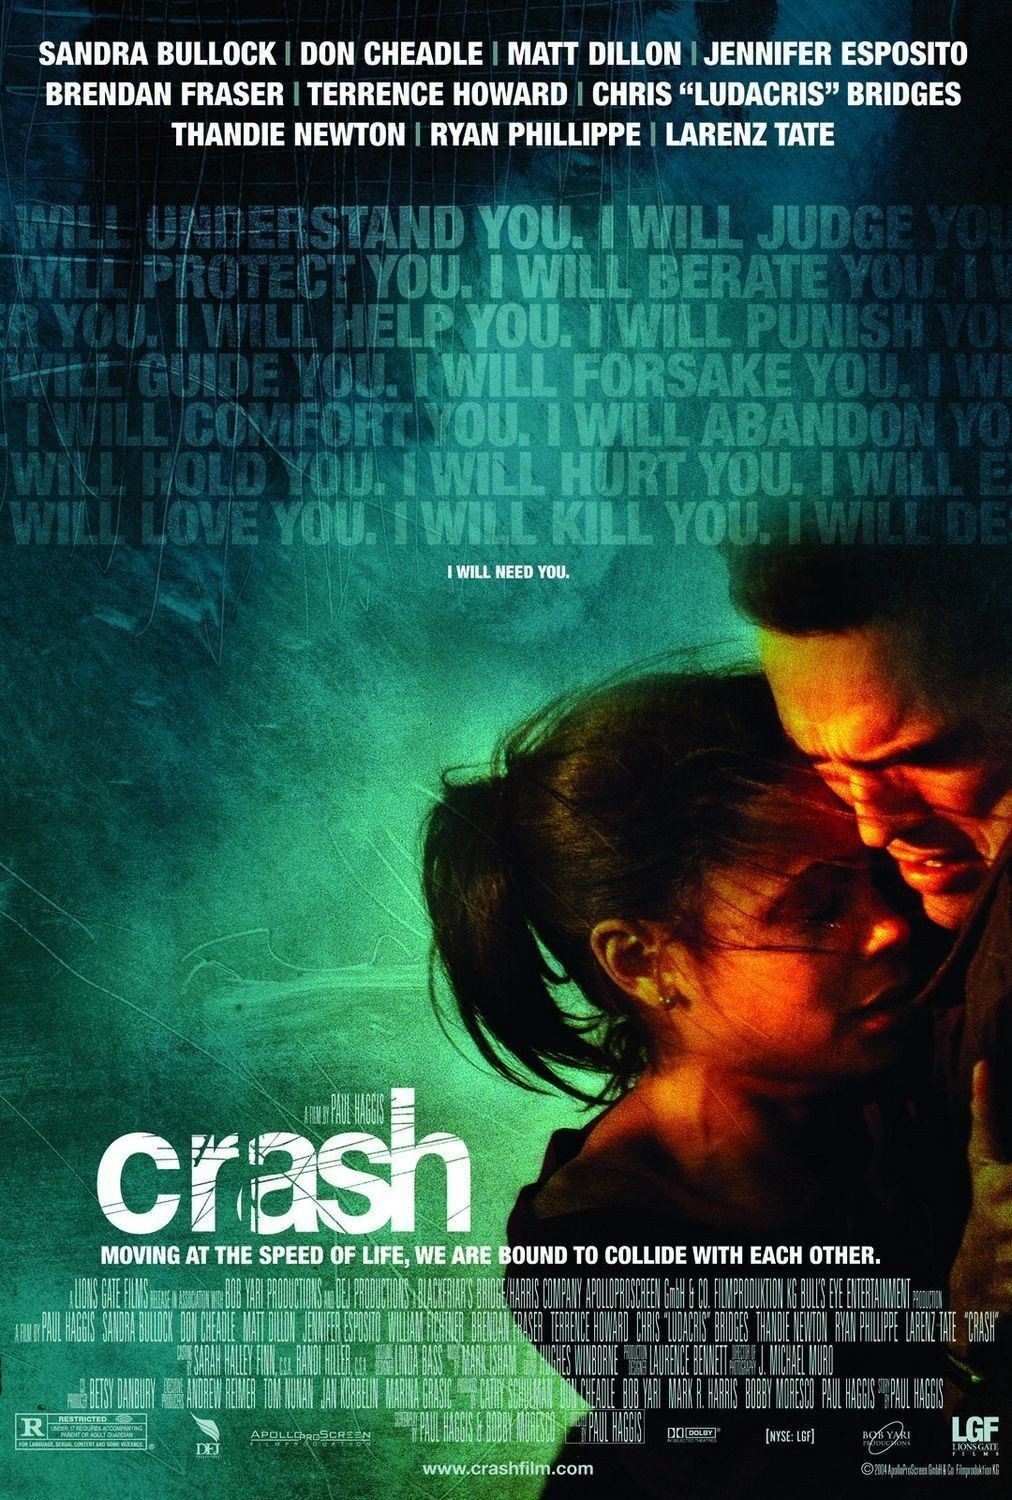 Poster for the movie Crash